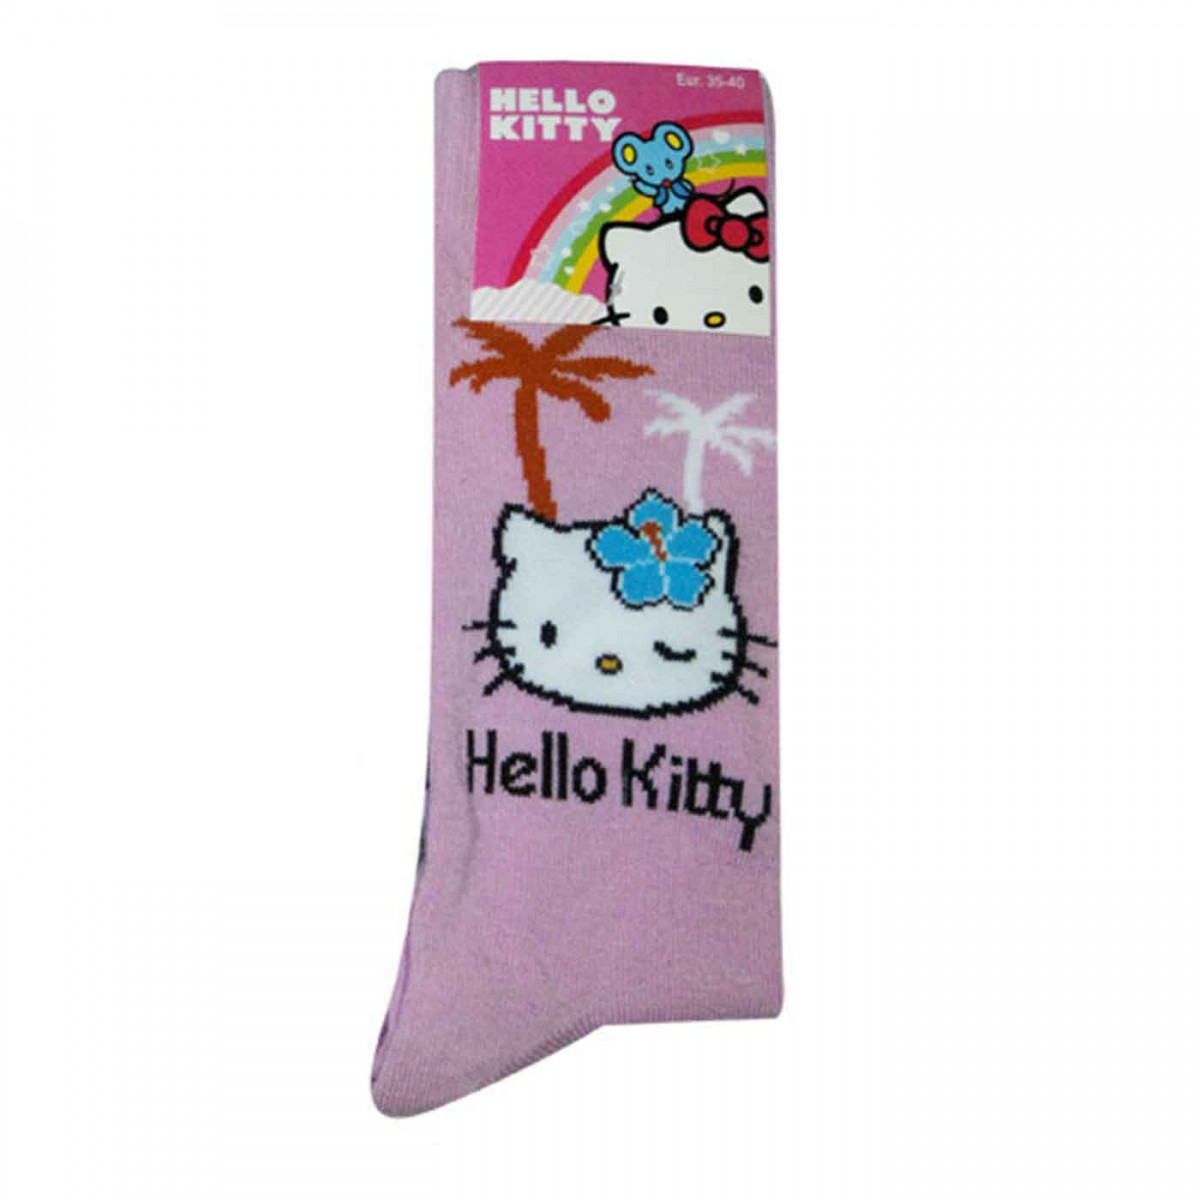 Hello Kitty Socken pink mit Palmen